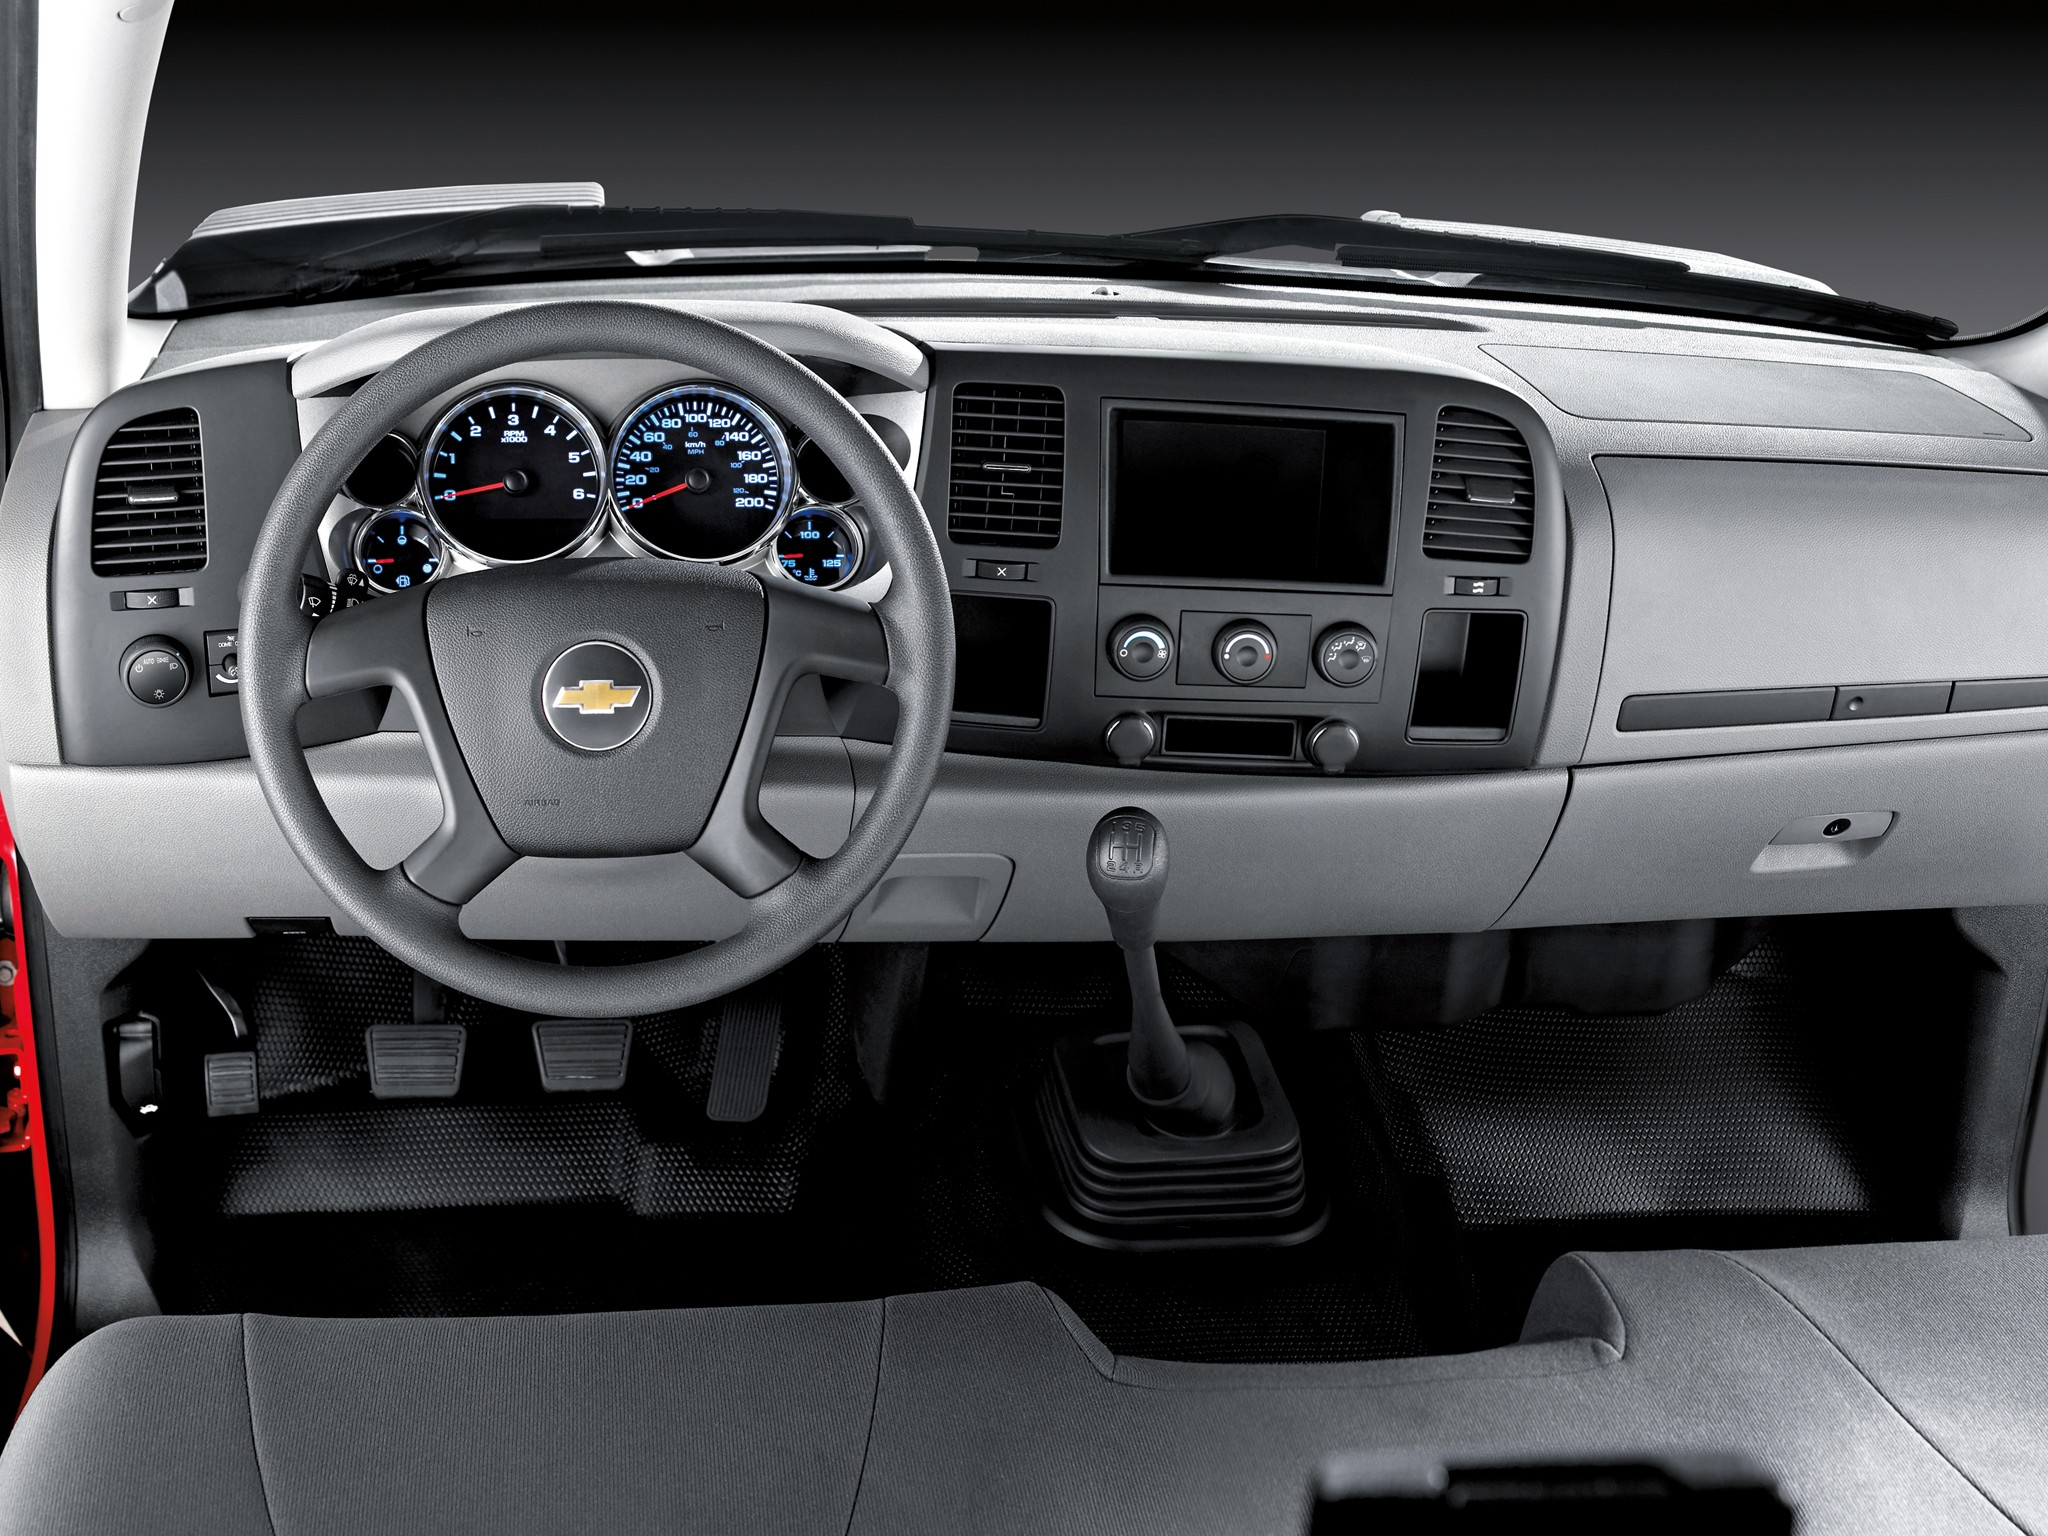 CHEVROLET Silverado 3500HD Regular Cab specs & photos ...